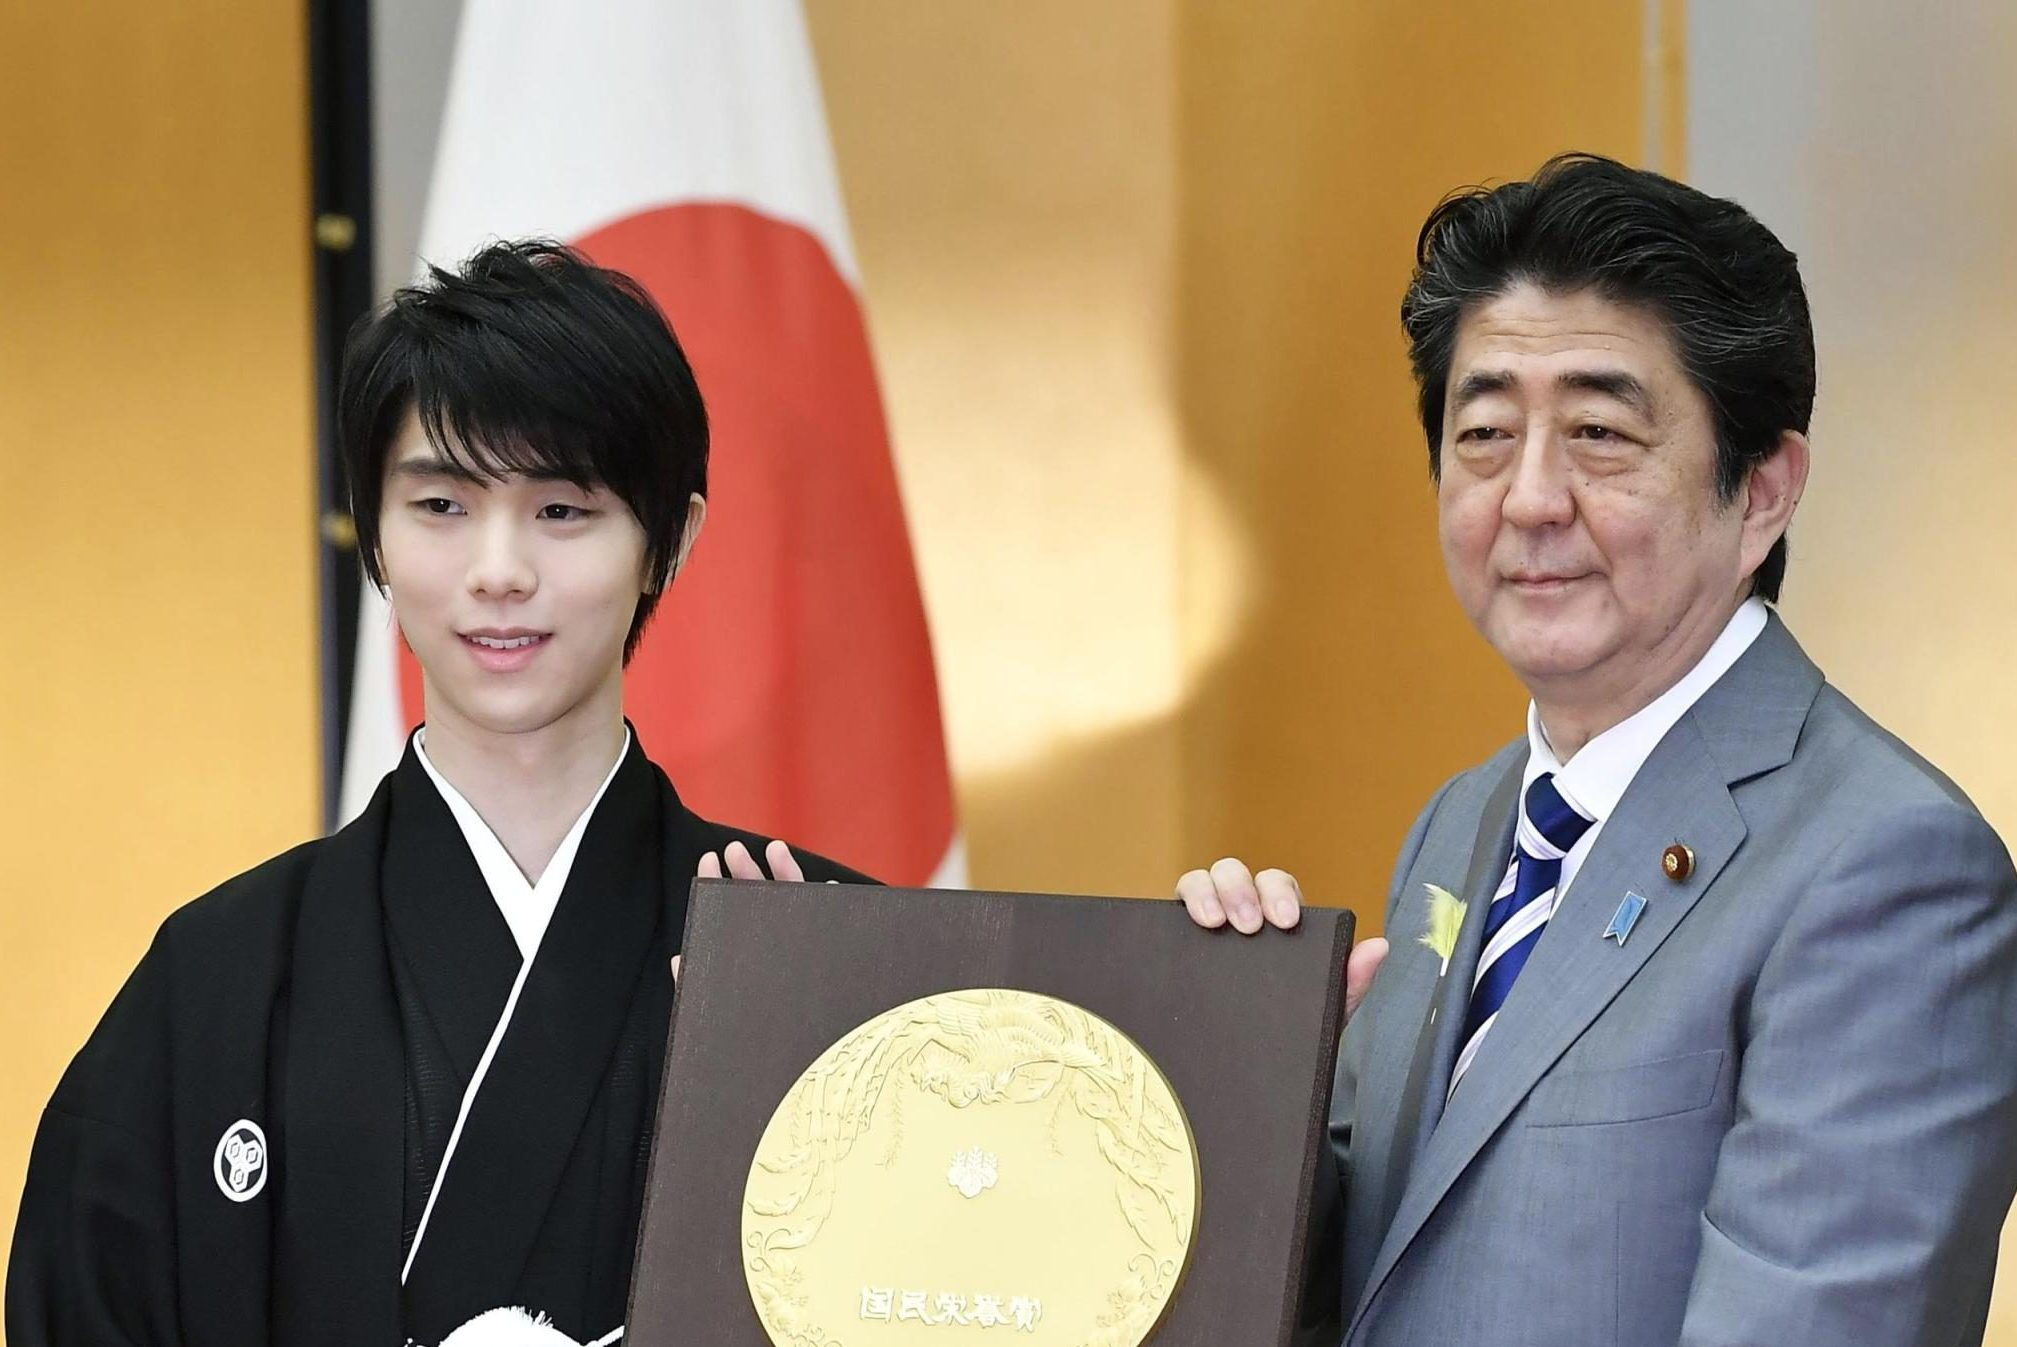 Yuzuru Hanyu presented the People's Honor Award by Prime Minister Abe